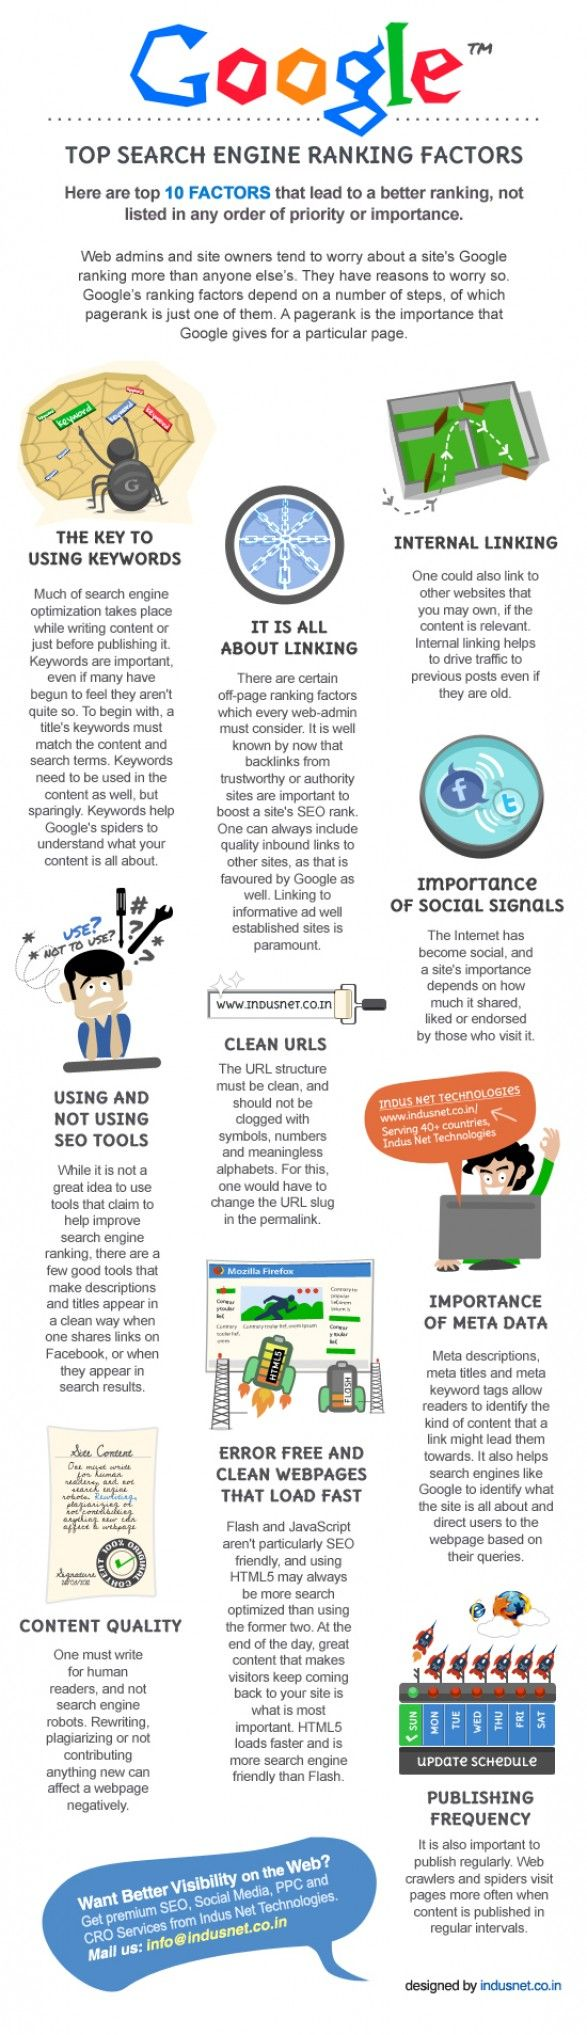 Google Top Search Engine Ranking Factors